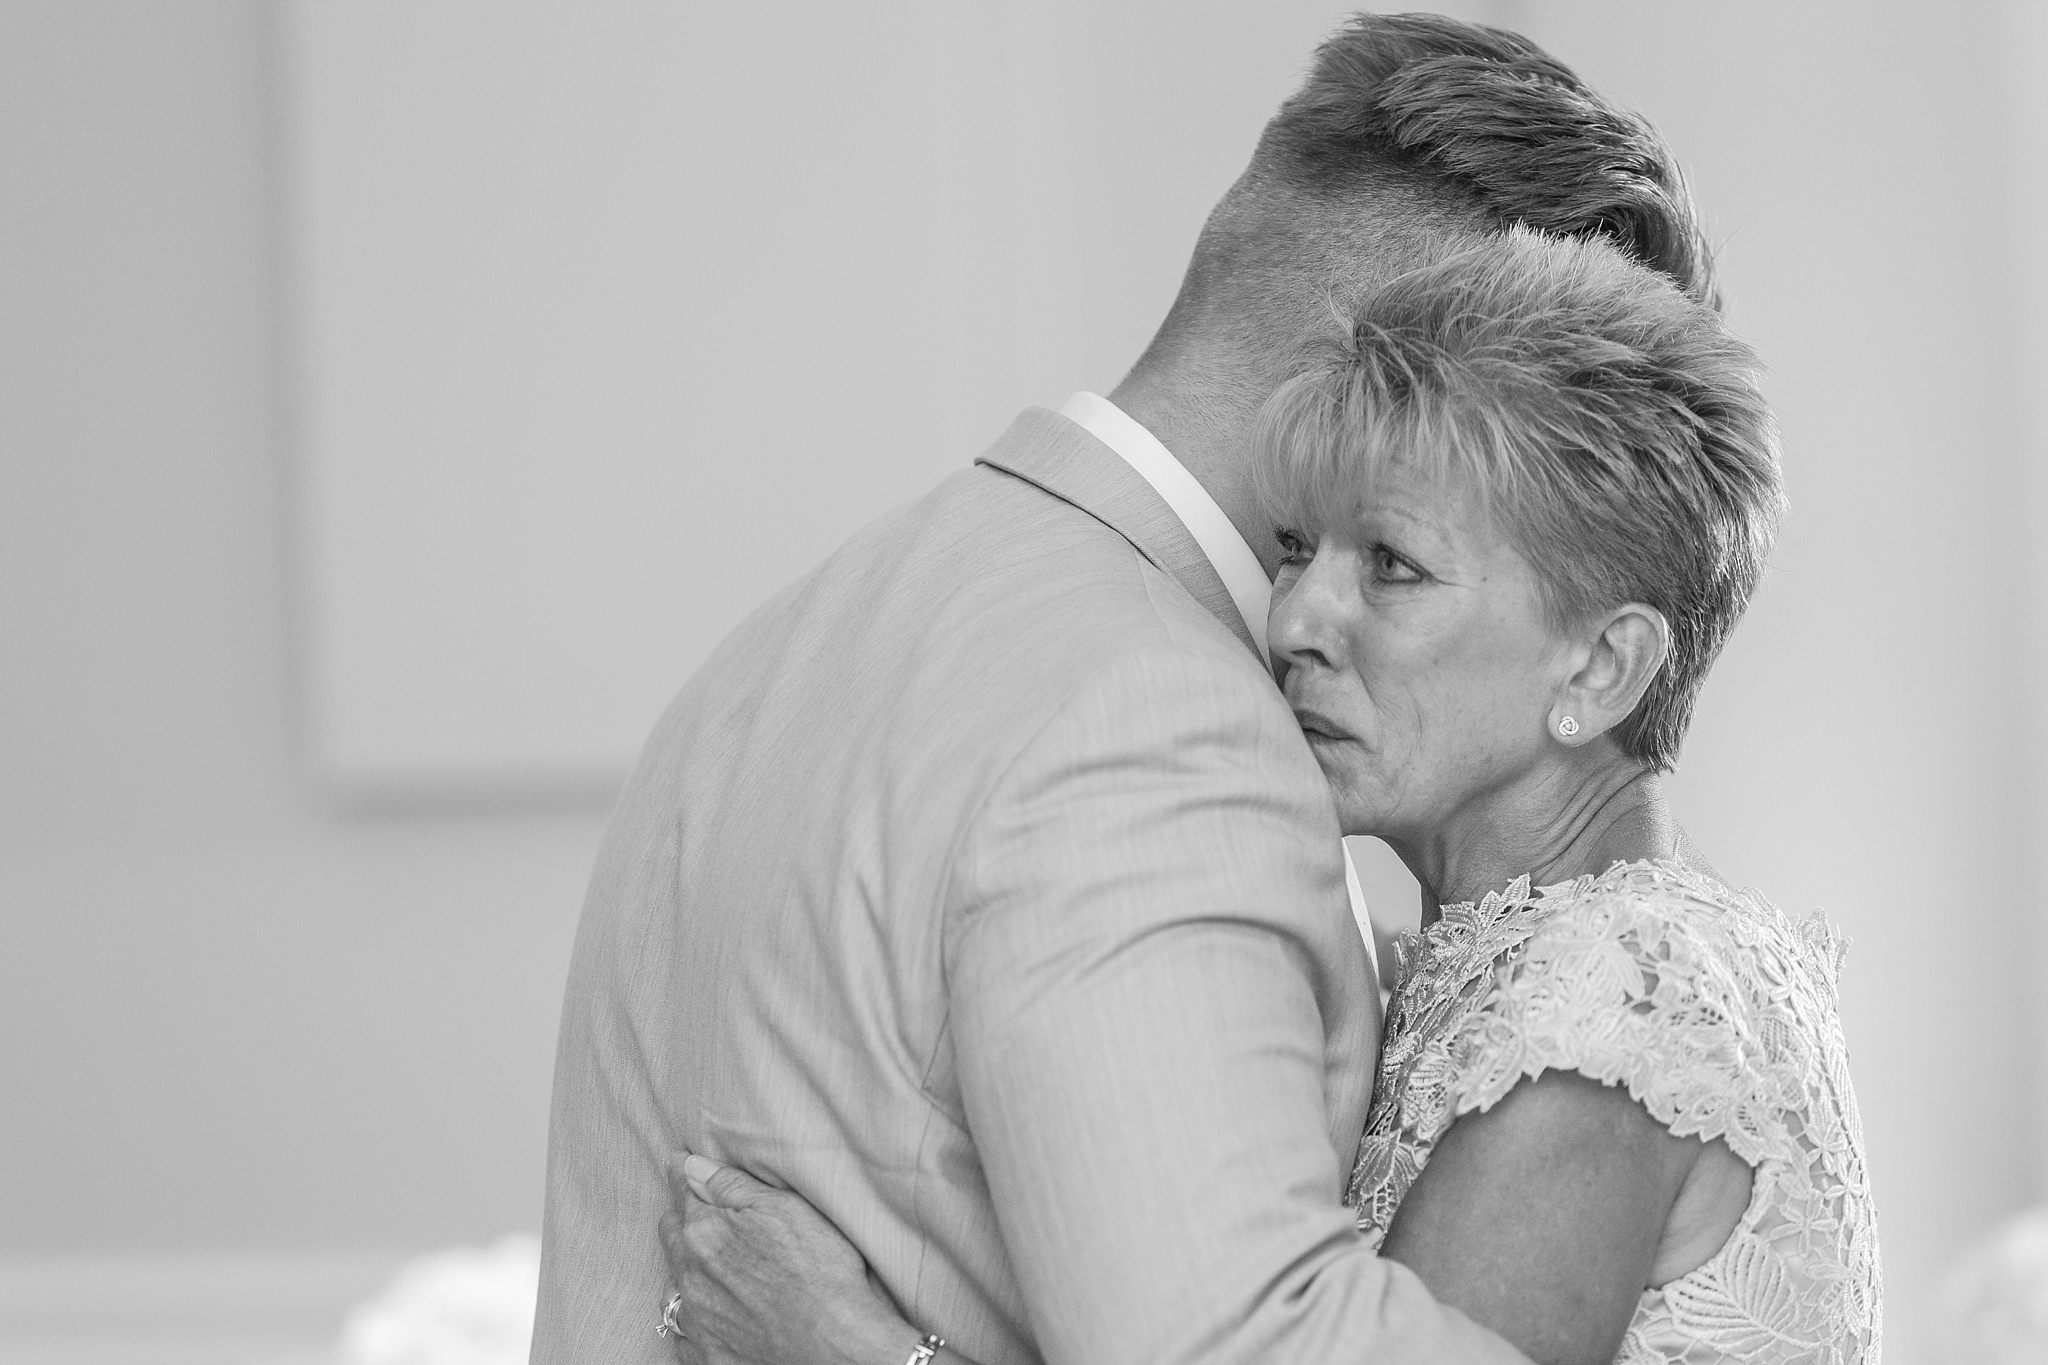 romantic-artful-candid-wedding-photos-in-detroit-lansing-ann-arbor-northern-michigan-and-chicago-by-courtney-carolyn-photography_0007.jpg